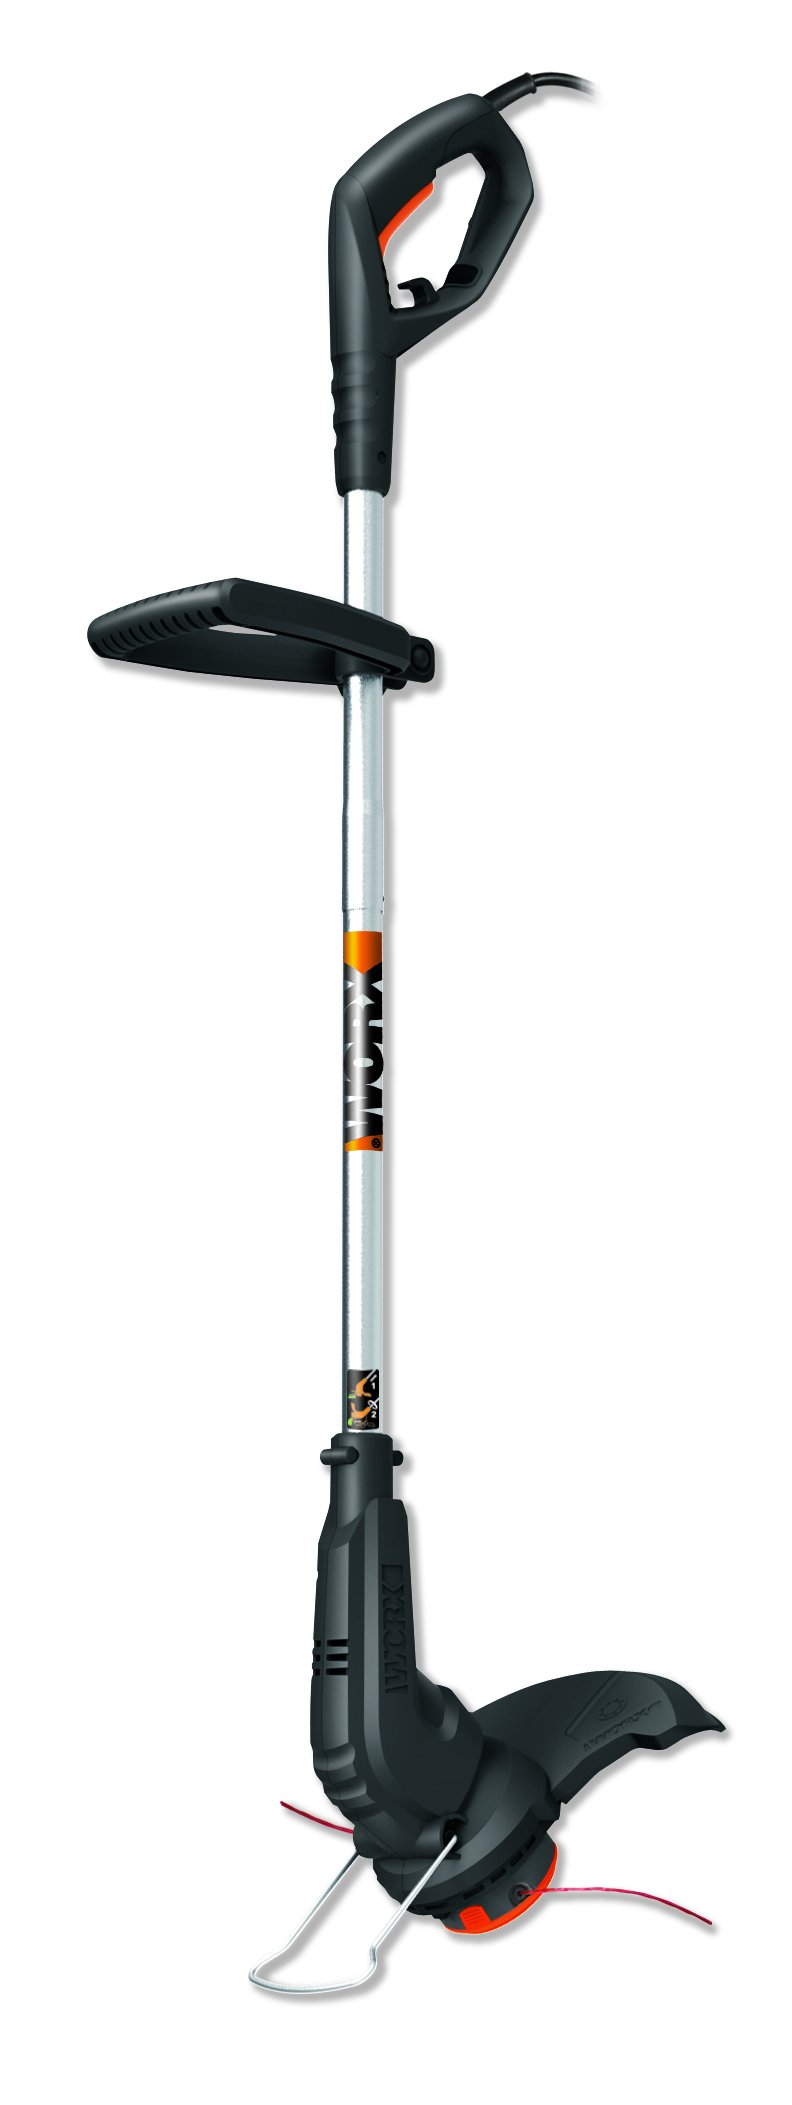 Worx WG116 12'' Fixed Shaft Electric Grass Trimmer, 4 Amp